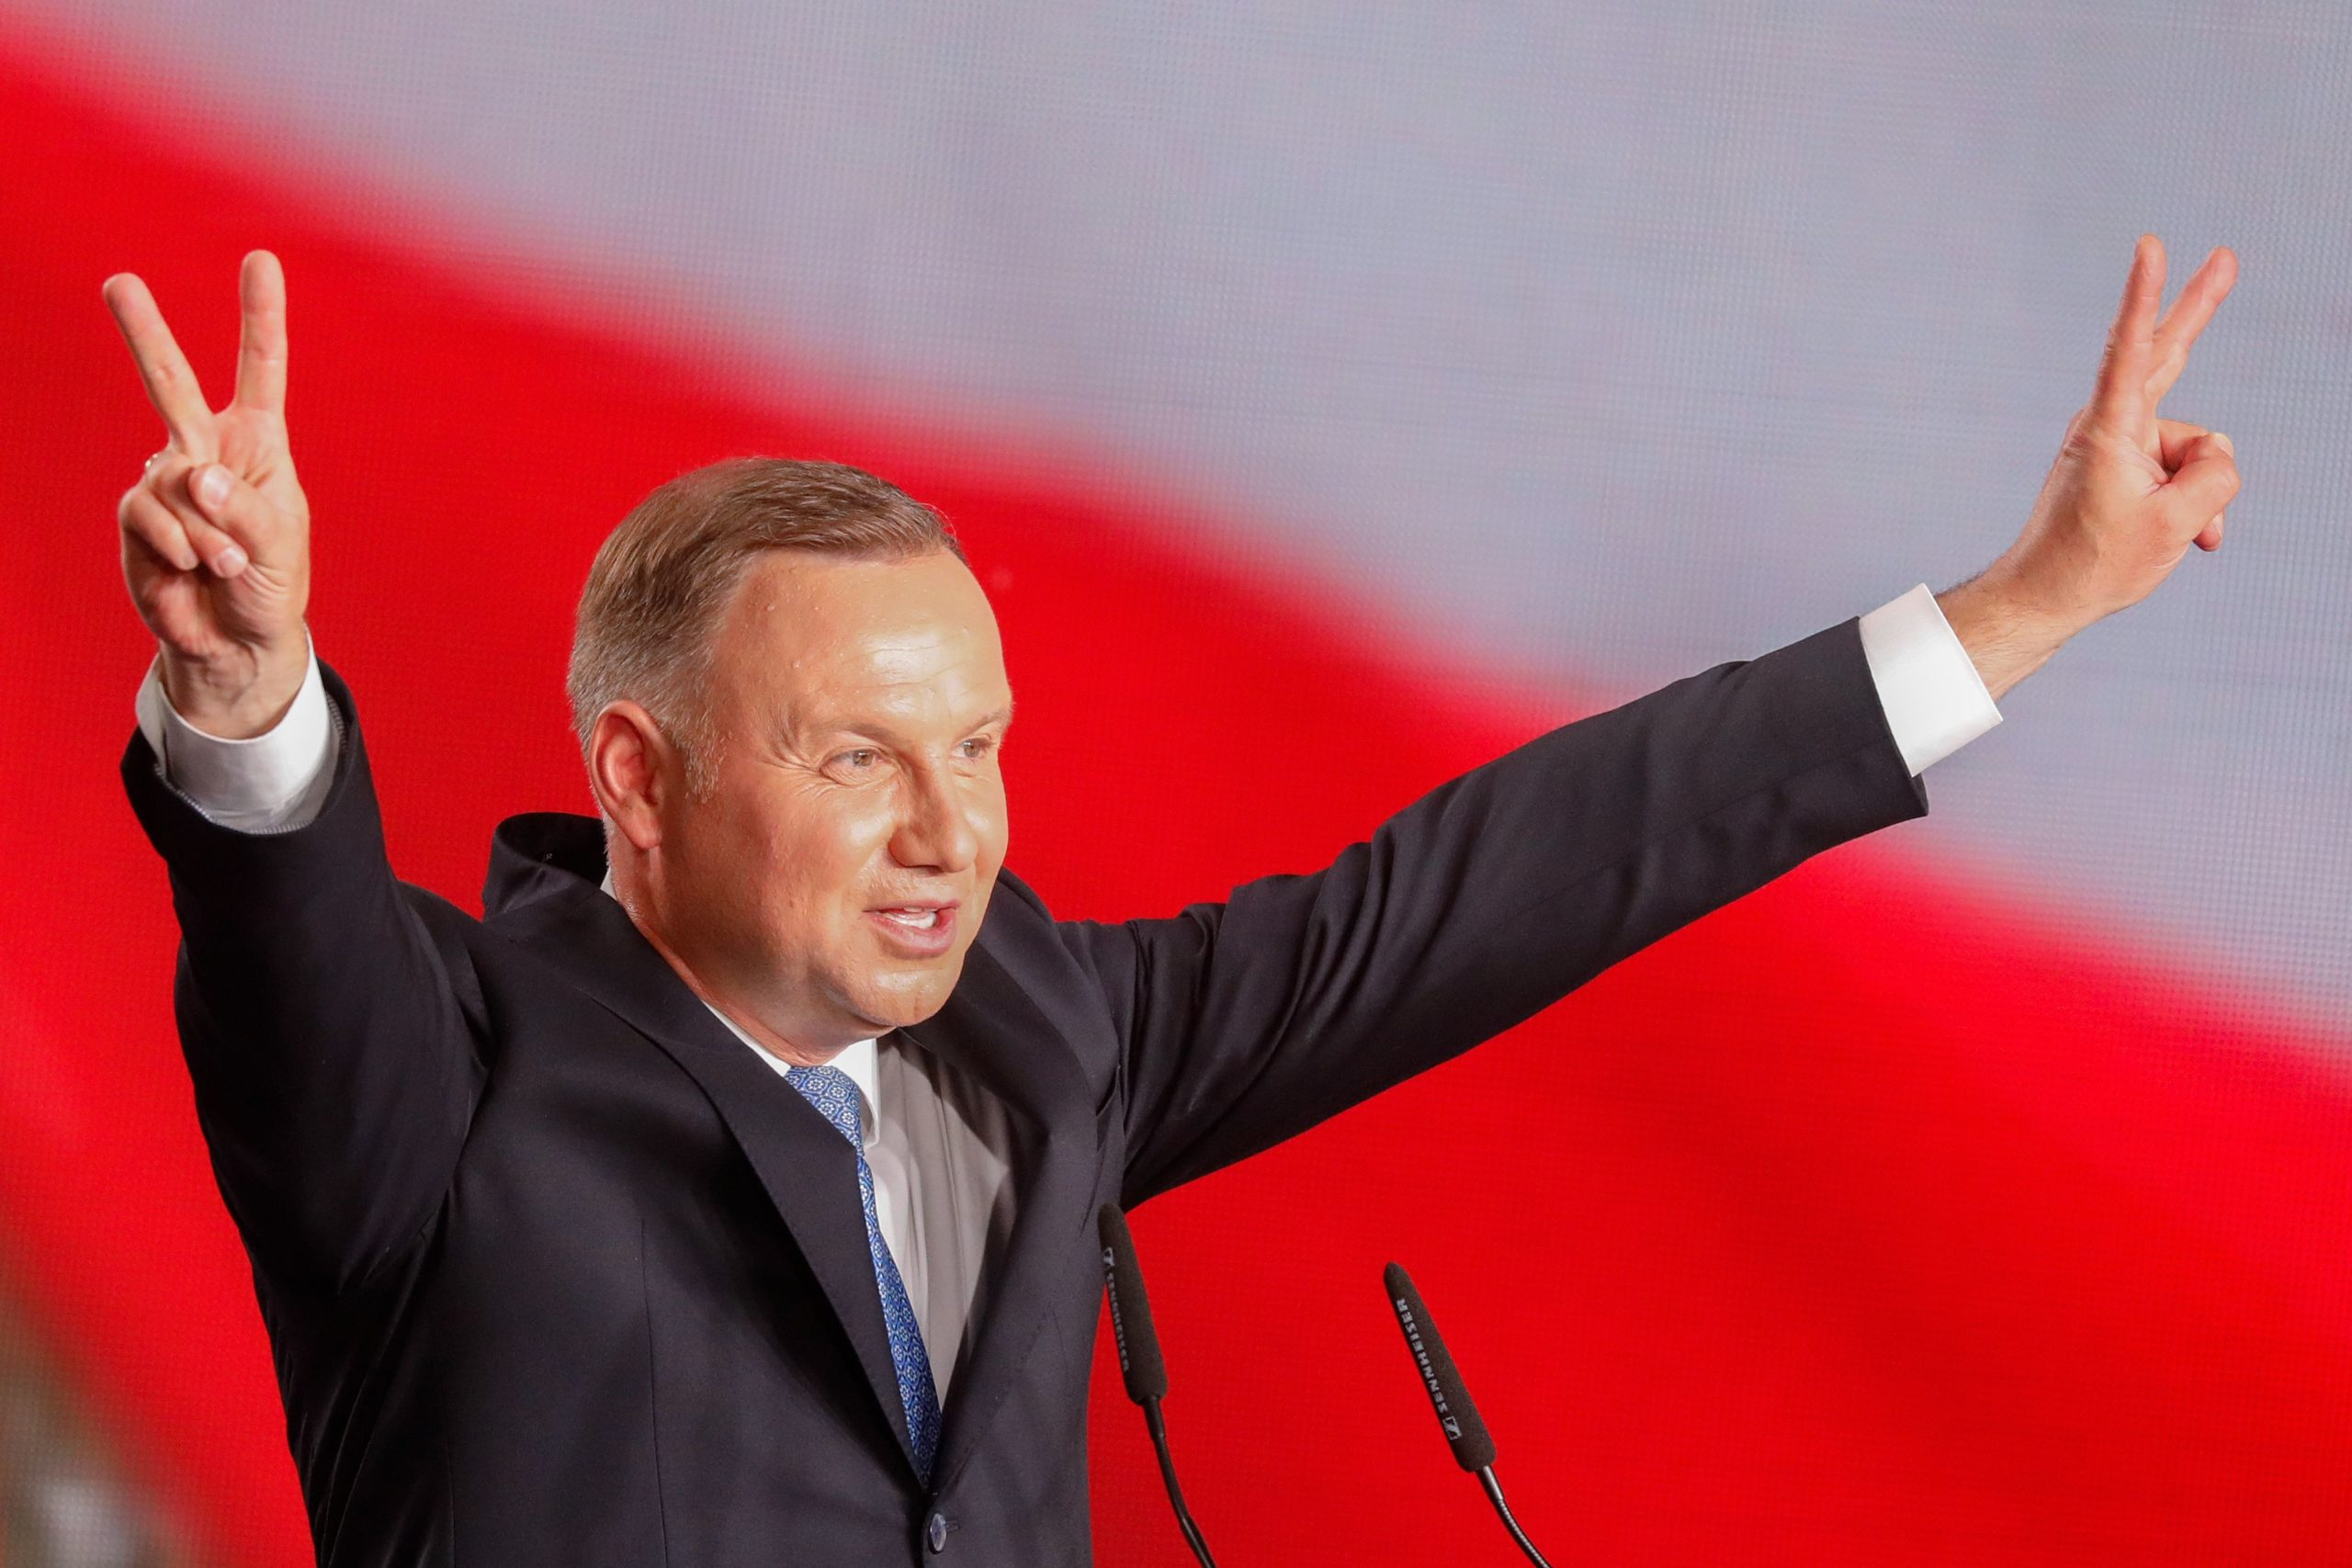 Polish President Andrzej Duda flashes V-signs after addressing supporters as exit poll results were announced during the presidential election in Lowicz, Poland